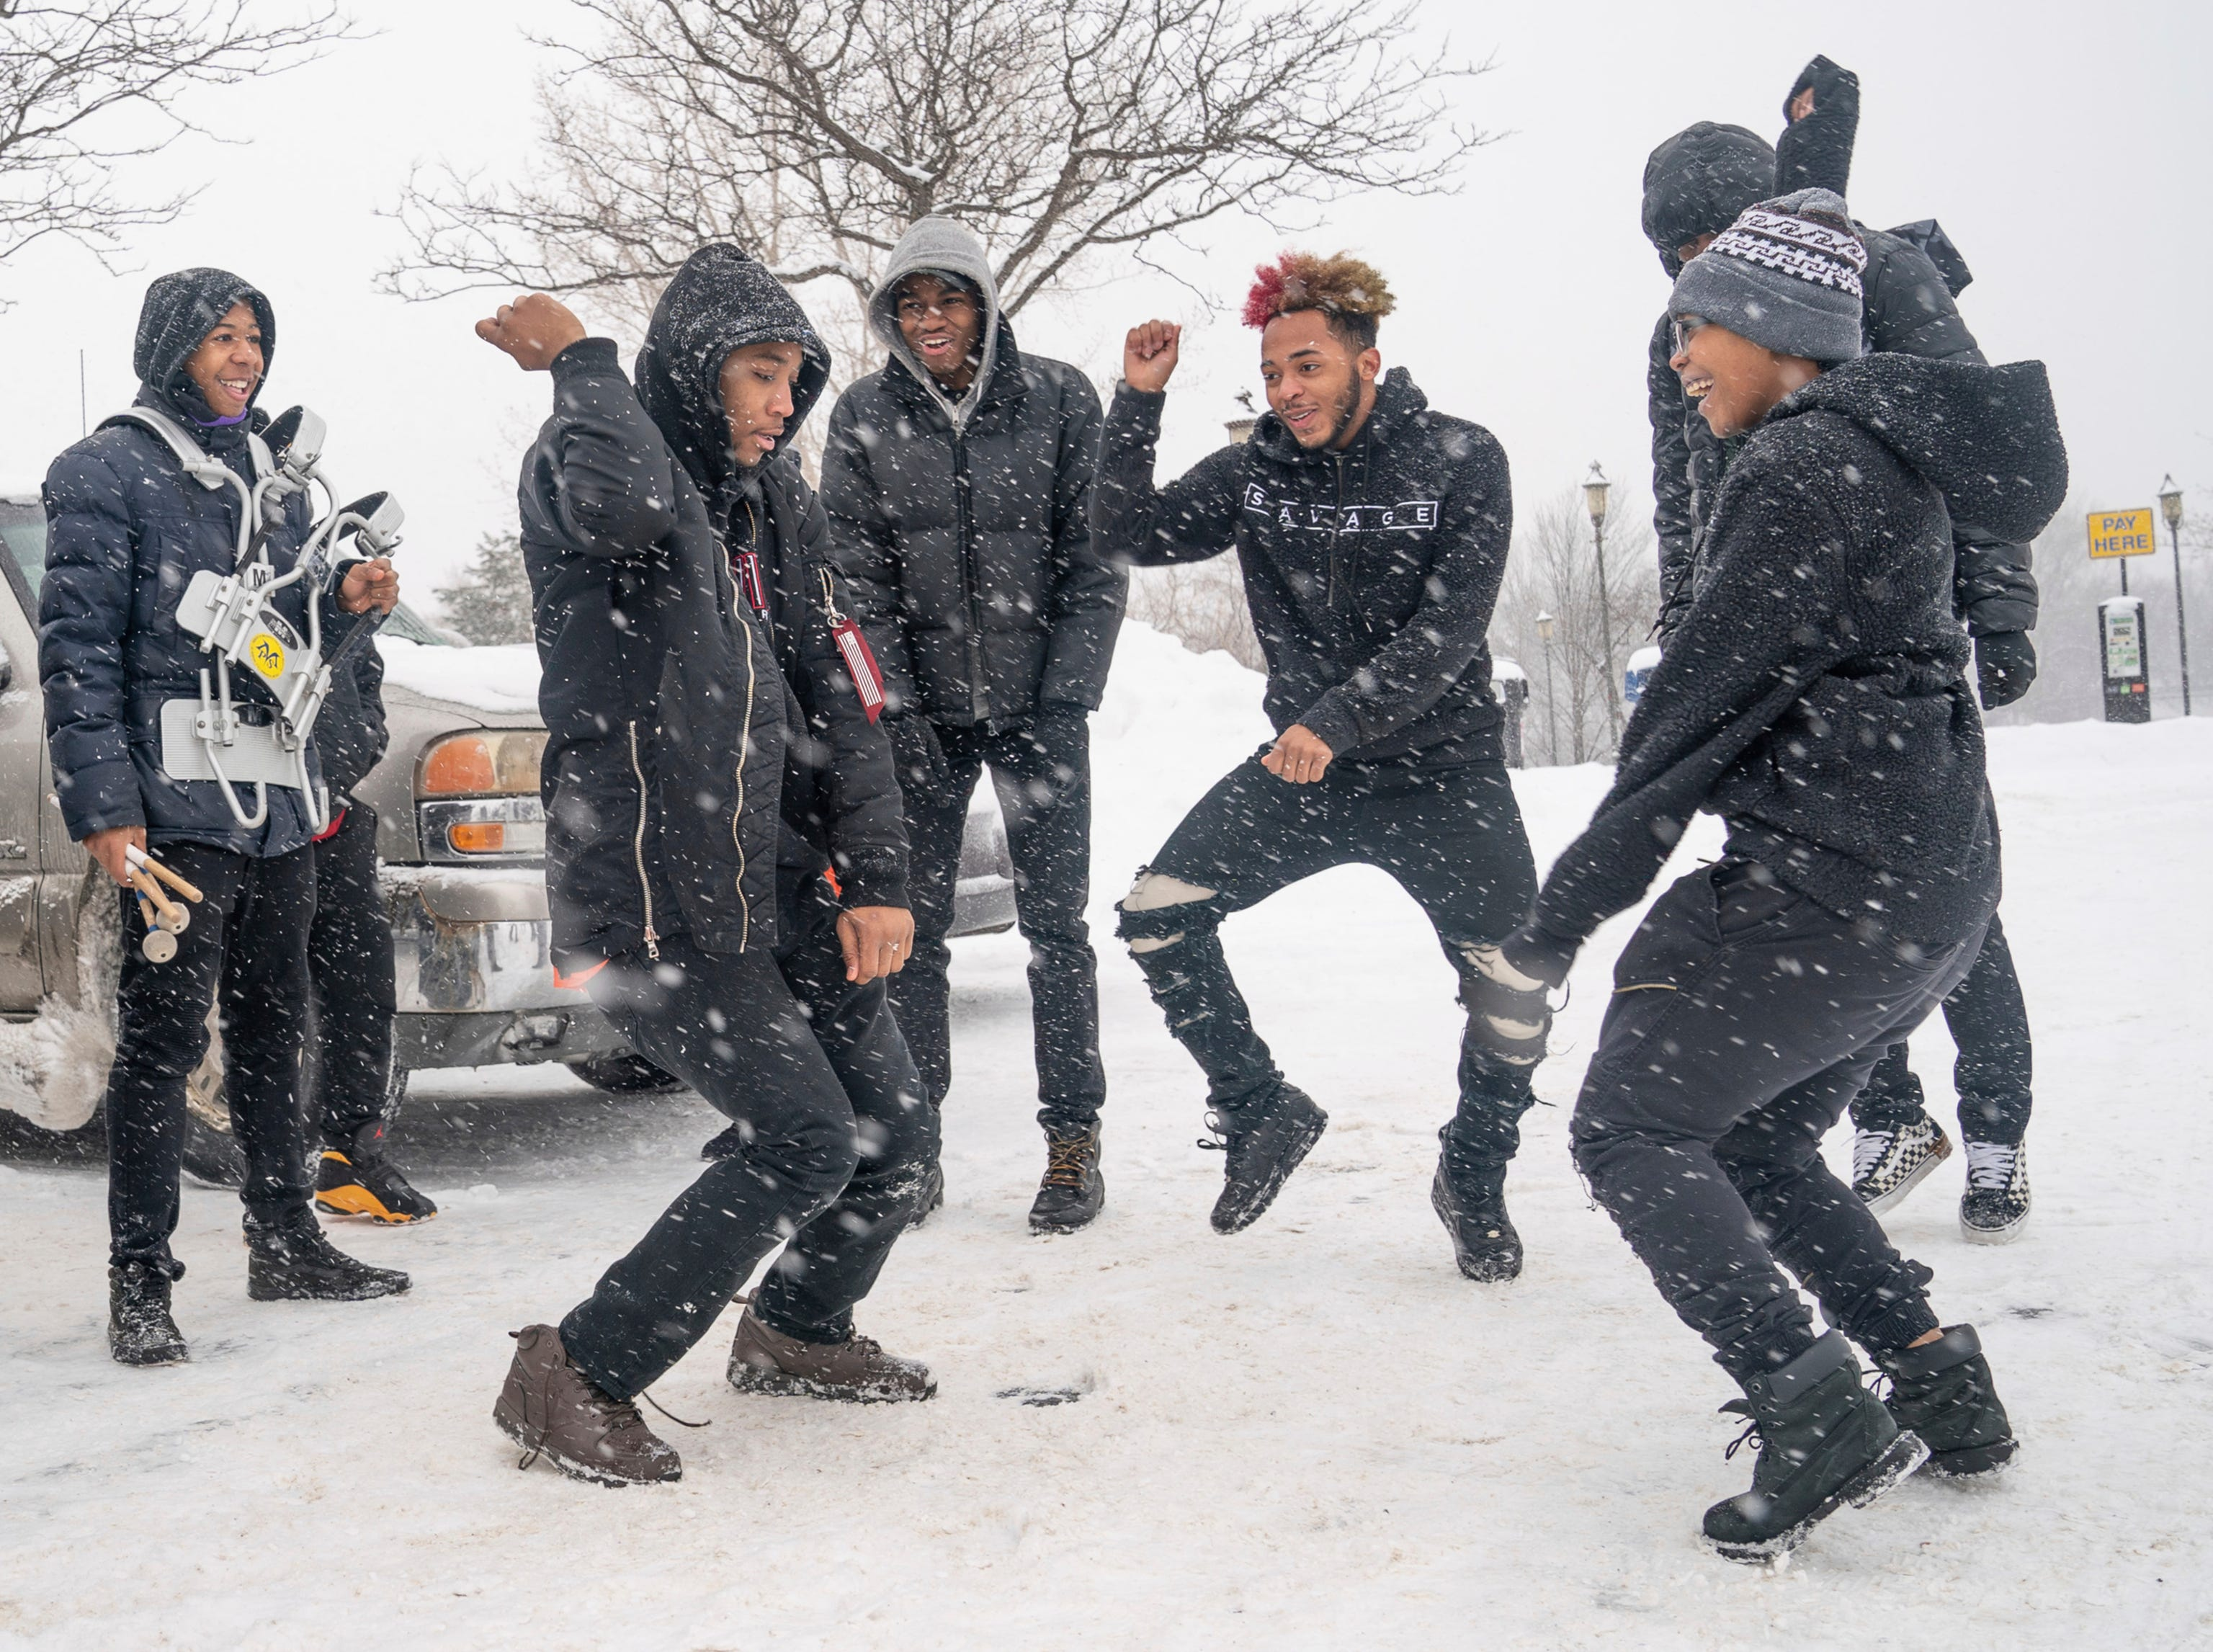 The combined North and Patrick Henry High School drum corps keeps warm in the parking lot Sunday, Feb. 10, 2019, before taking part in Sen. Amy Klobuchar's announcement to run for president from a snowy Boom Park, in Minneapolis.